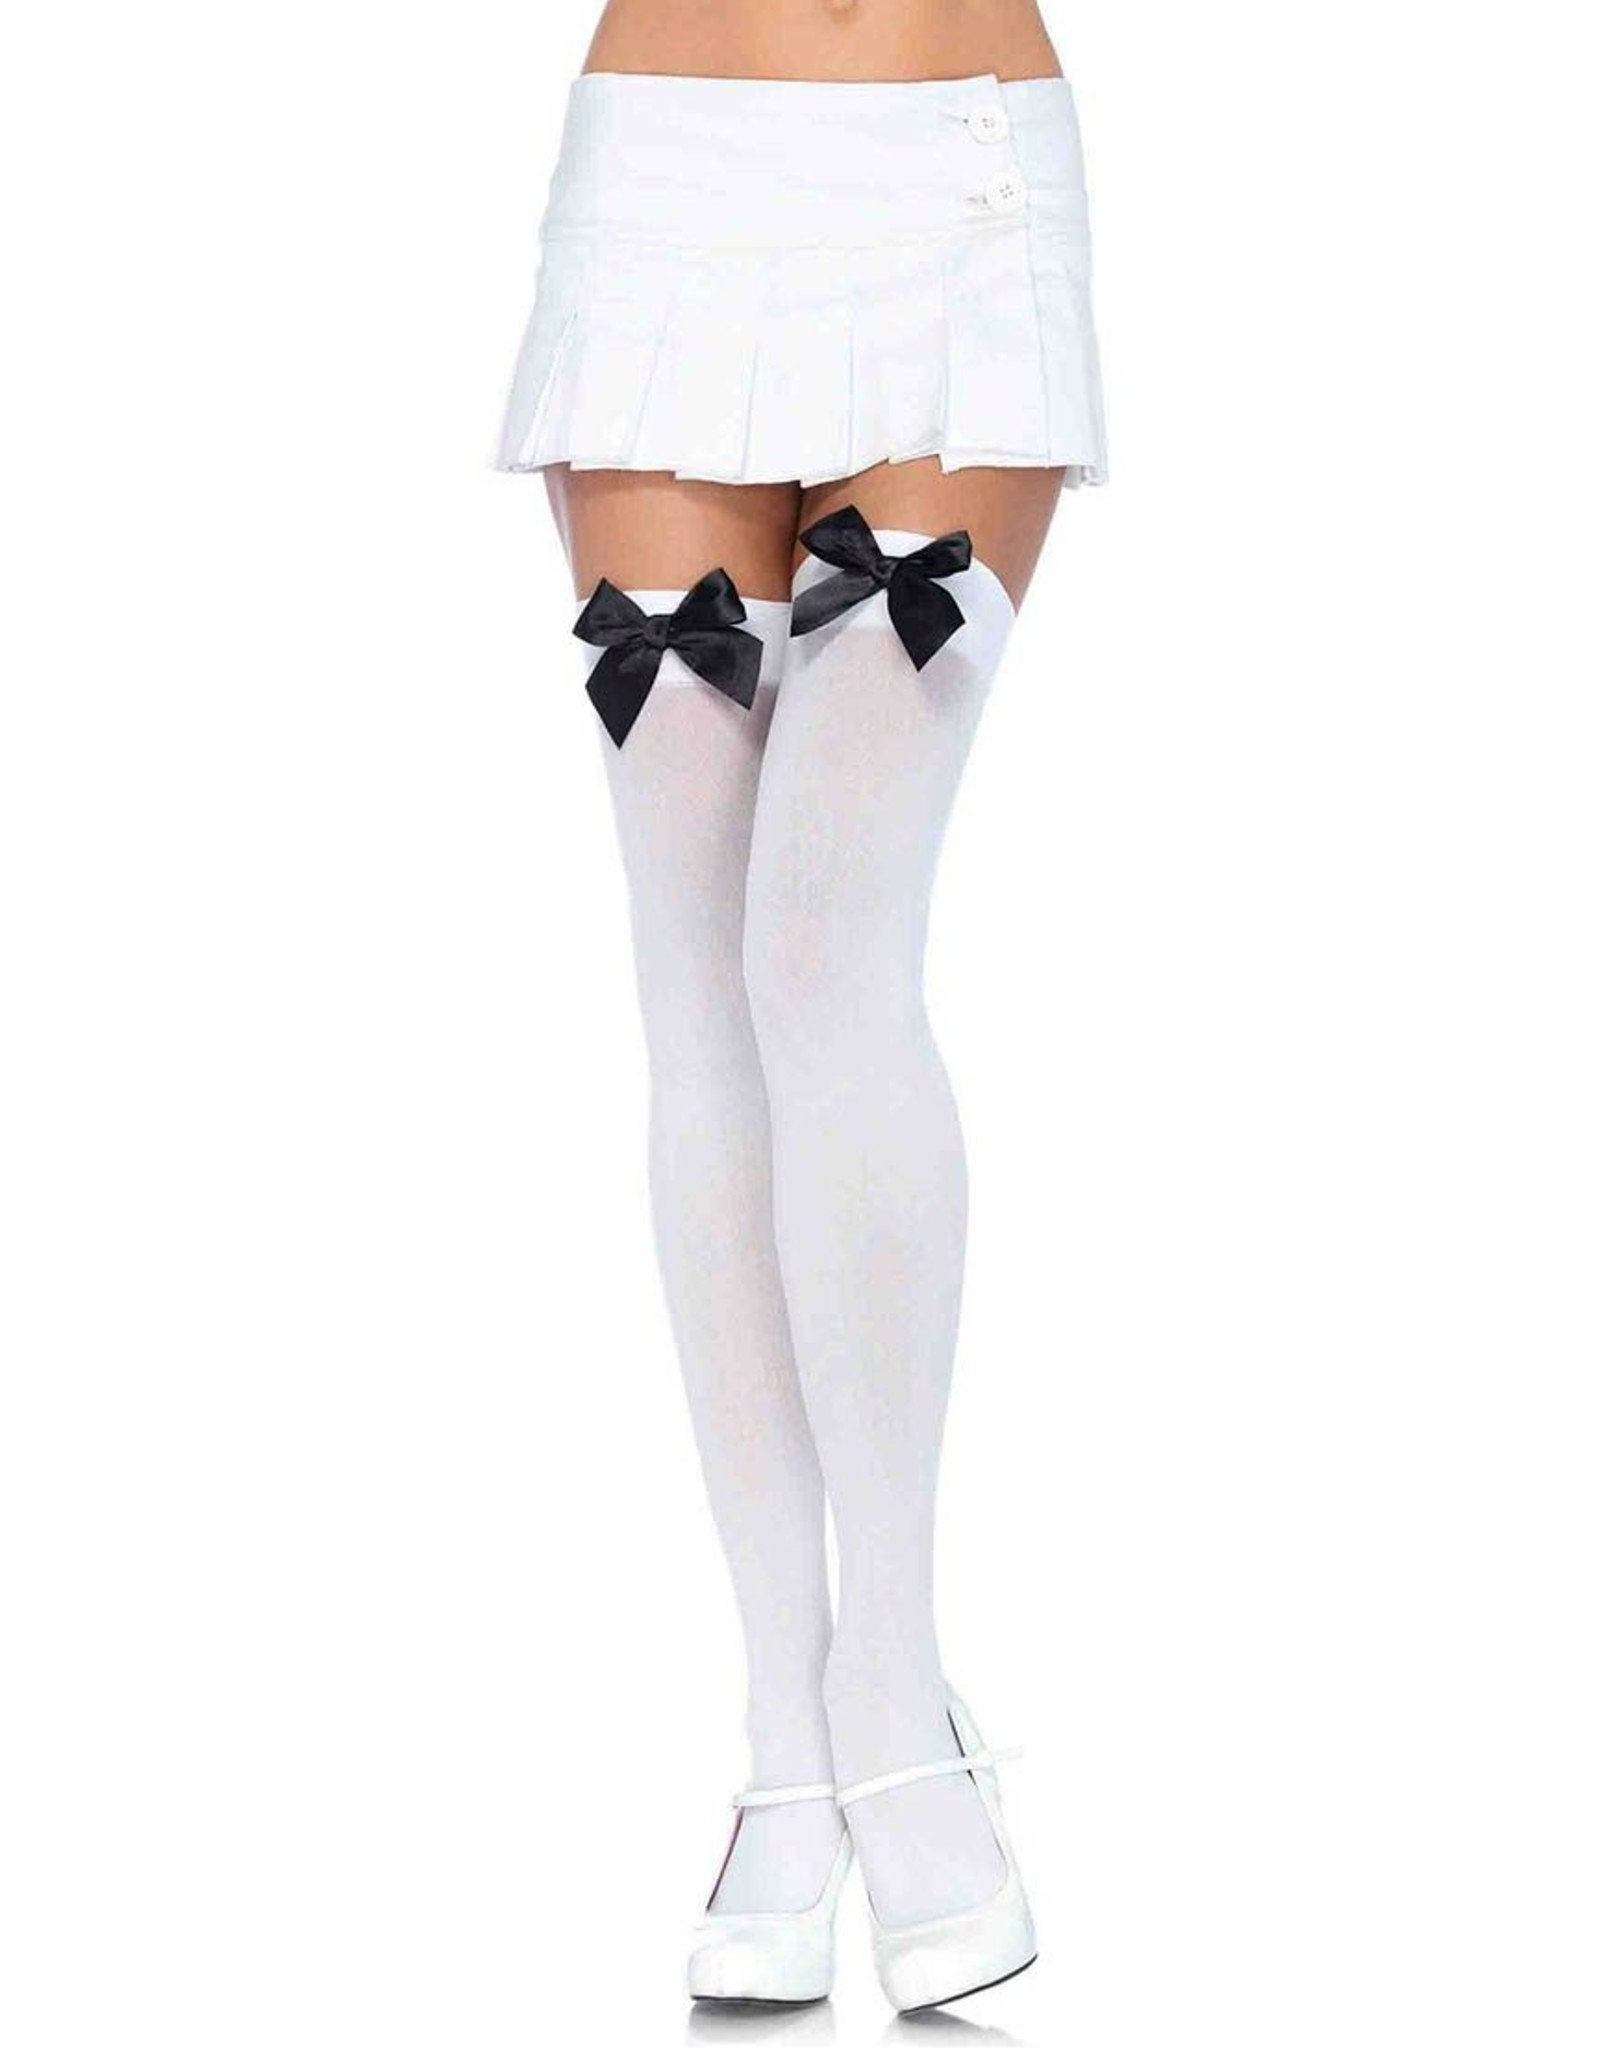 Thigh Highs  Black with Satin White Bow